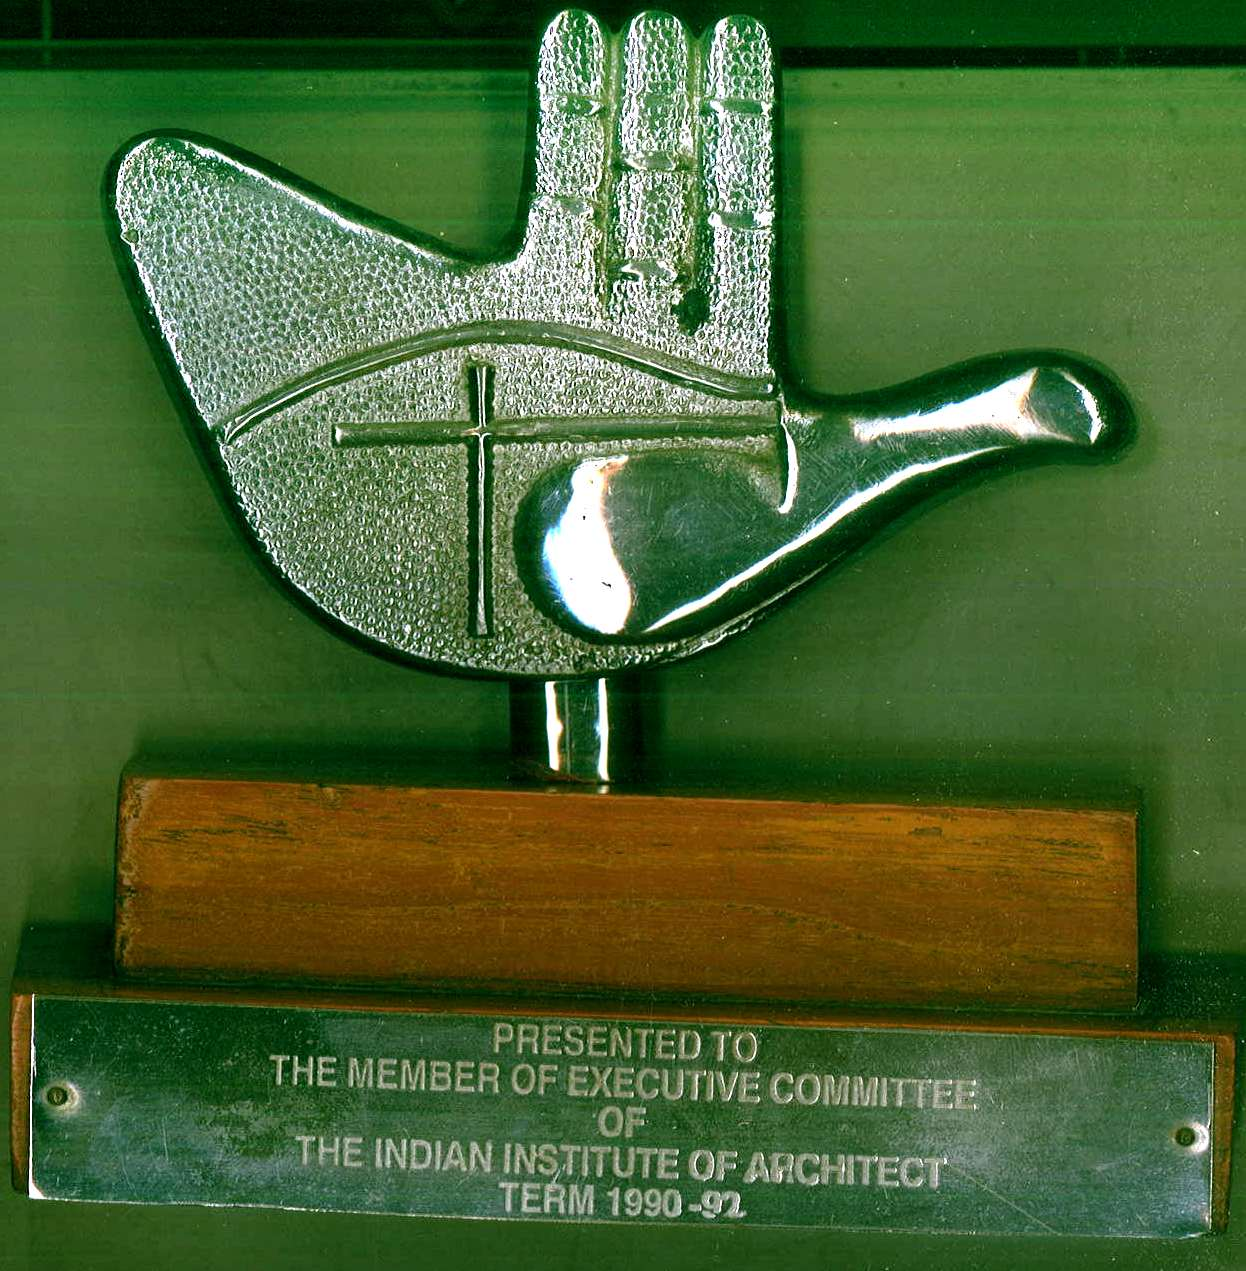 The Indian Institute of Architect Term 1990-92